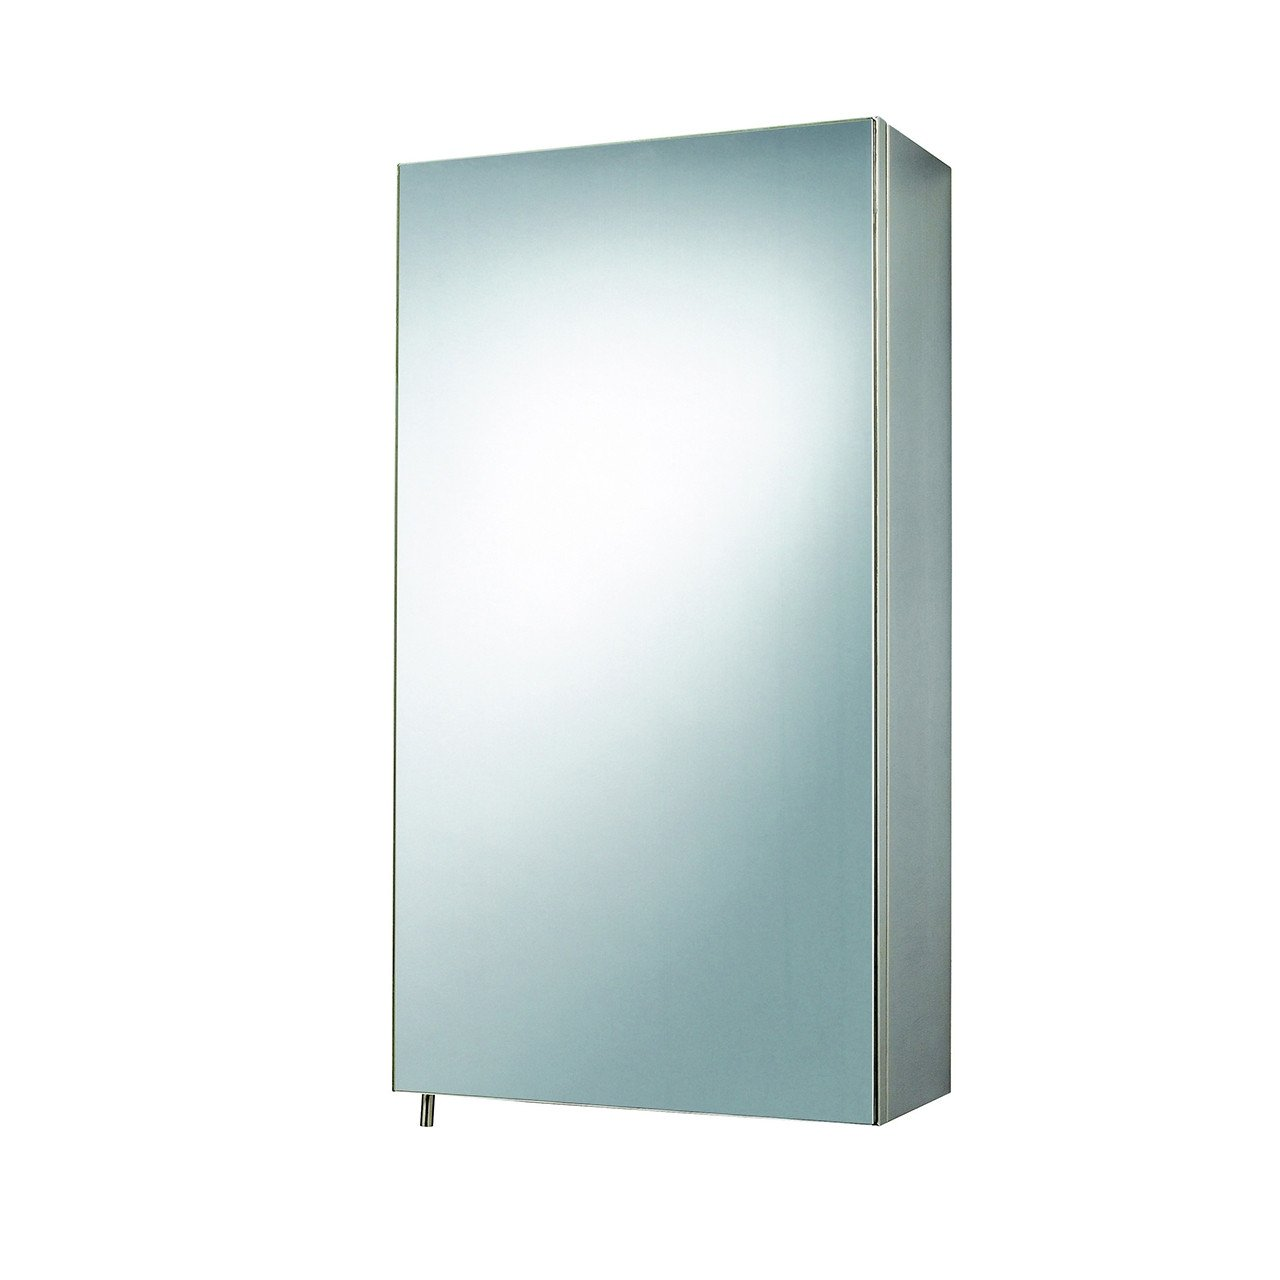 Single Bathroom Cabinet & Mirror